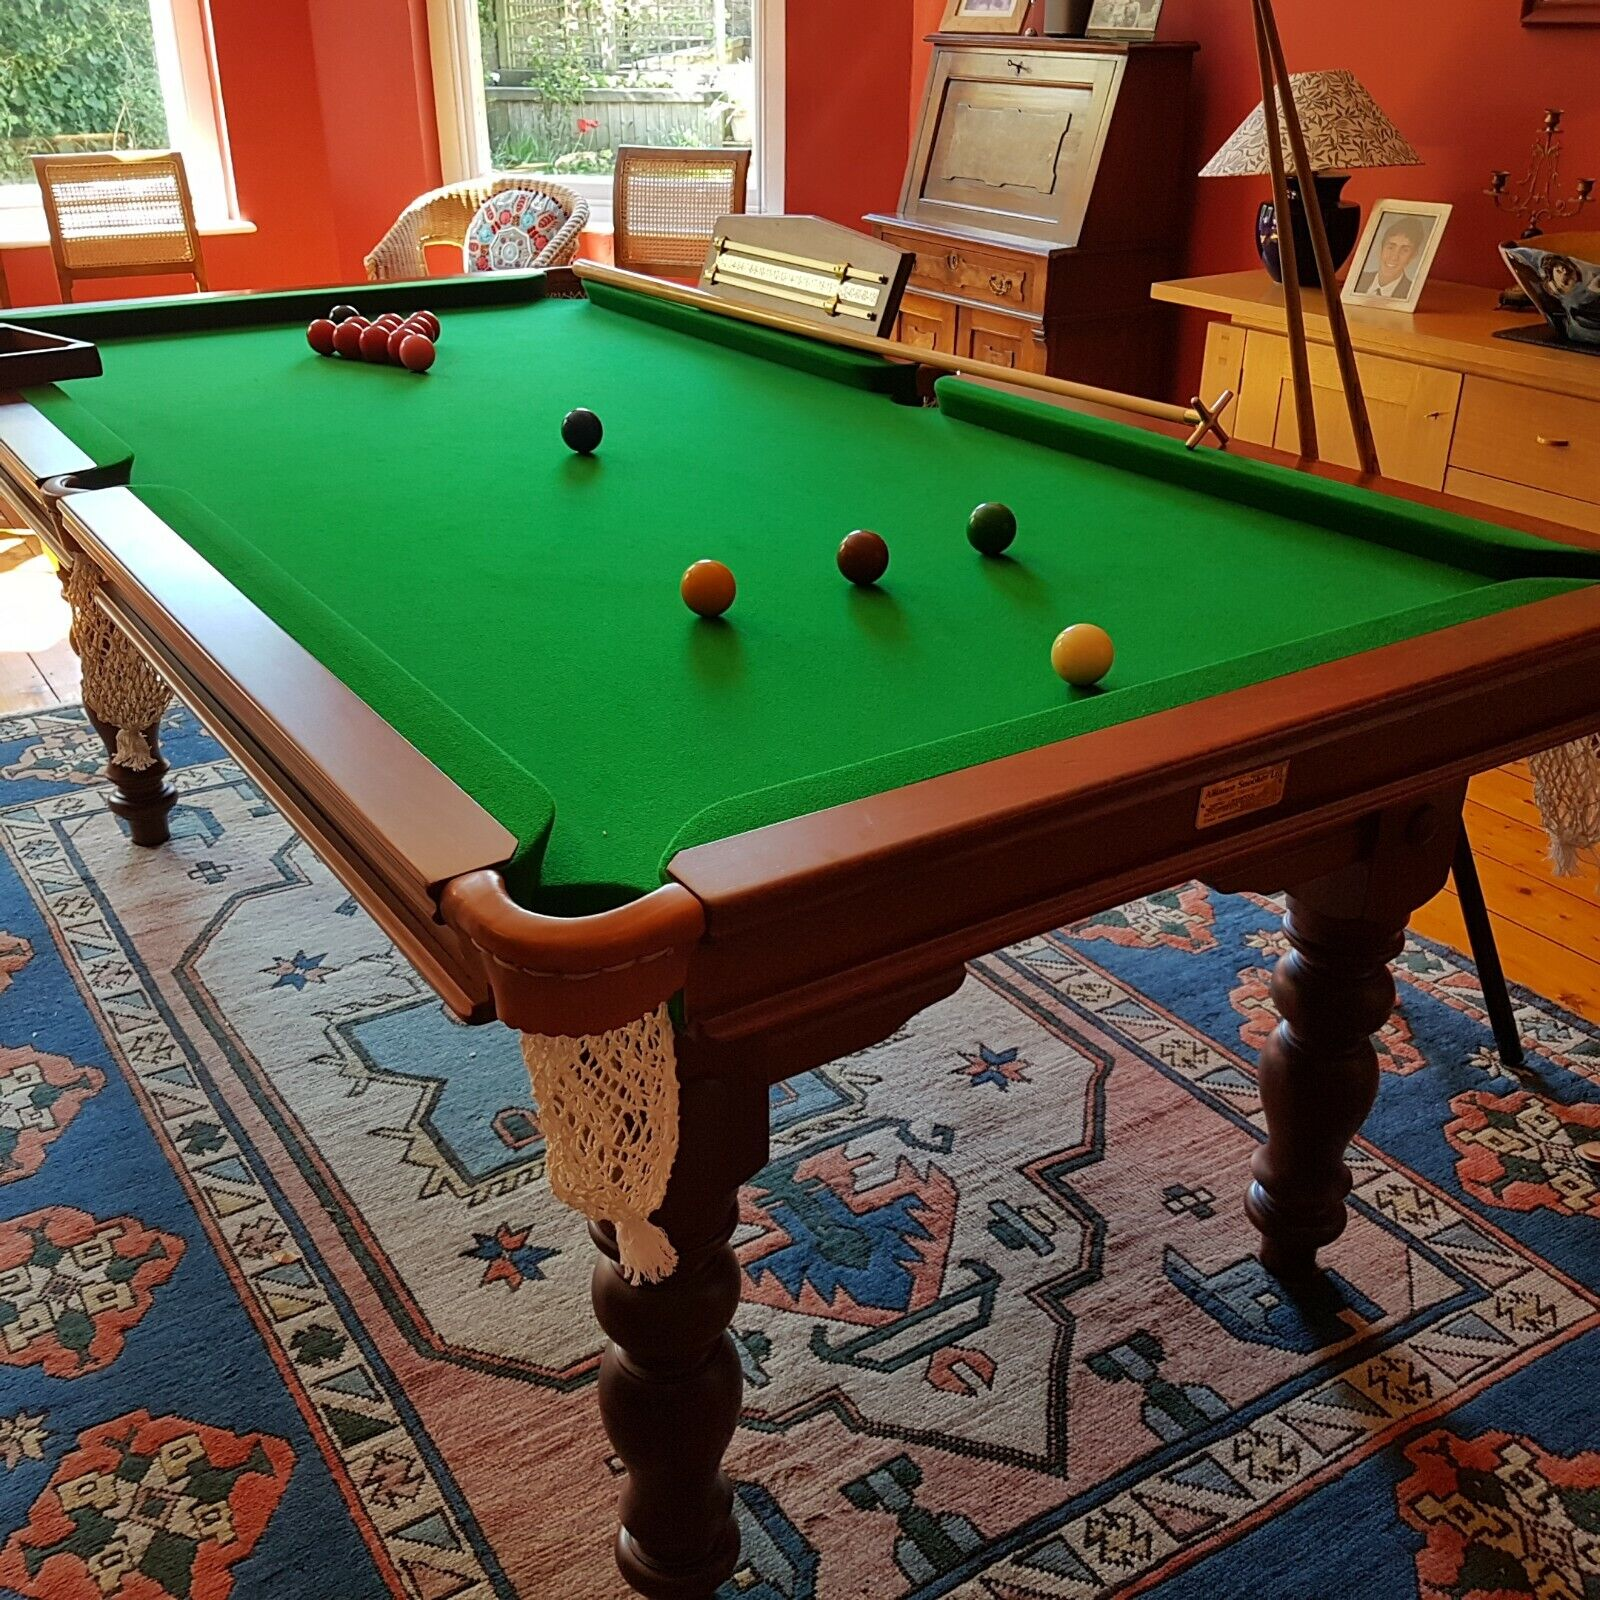 Seven foot snooker/dining table